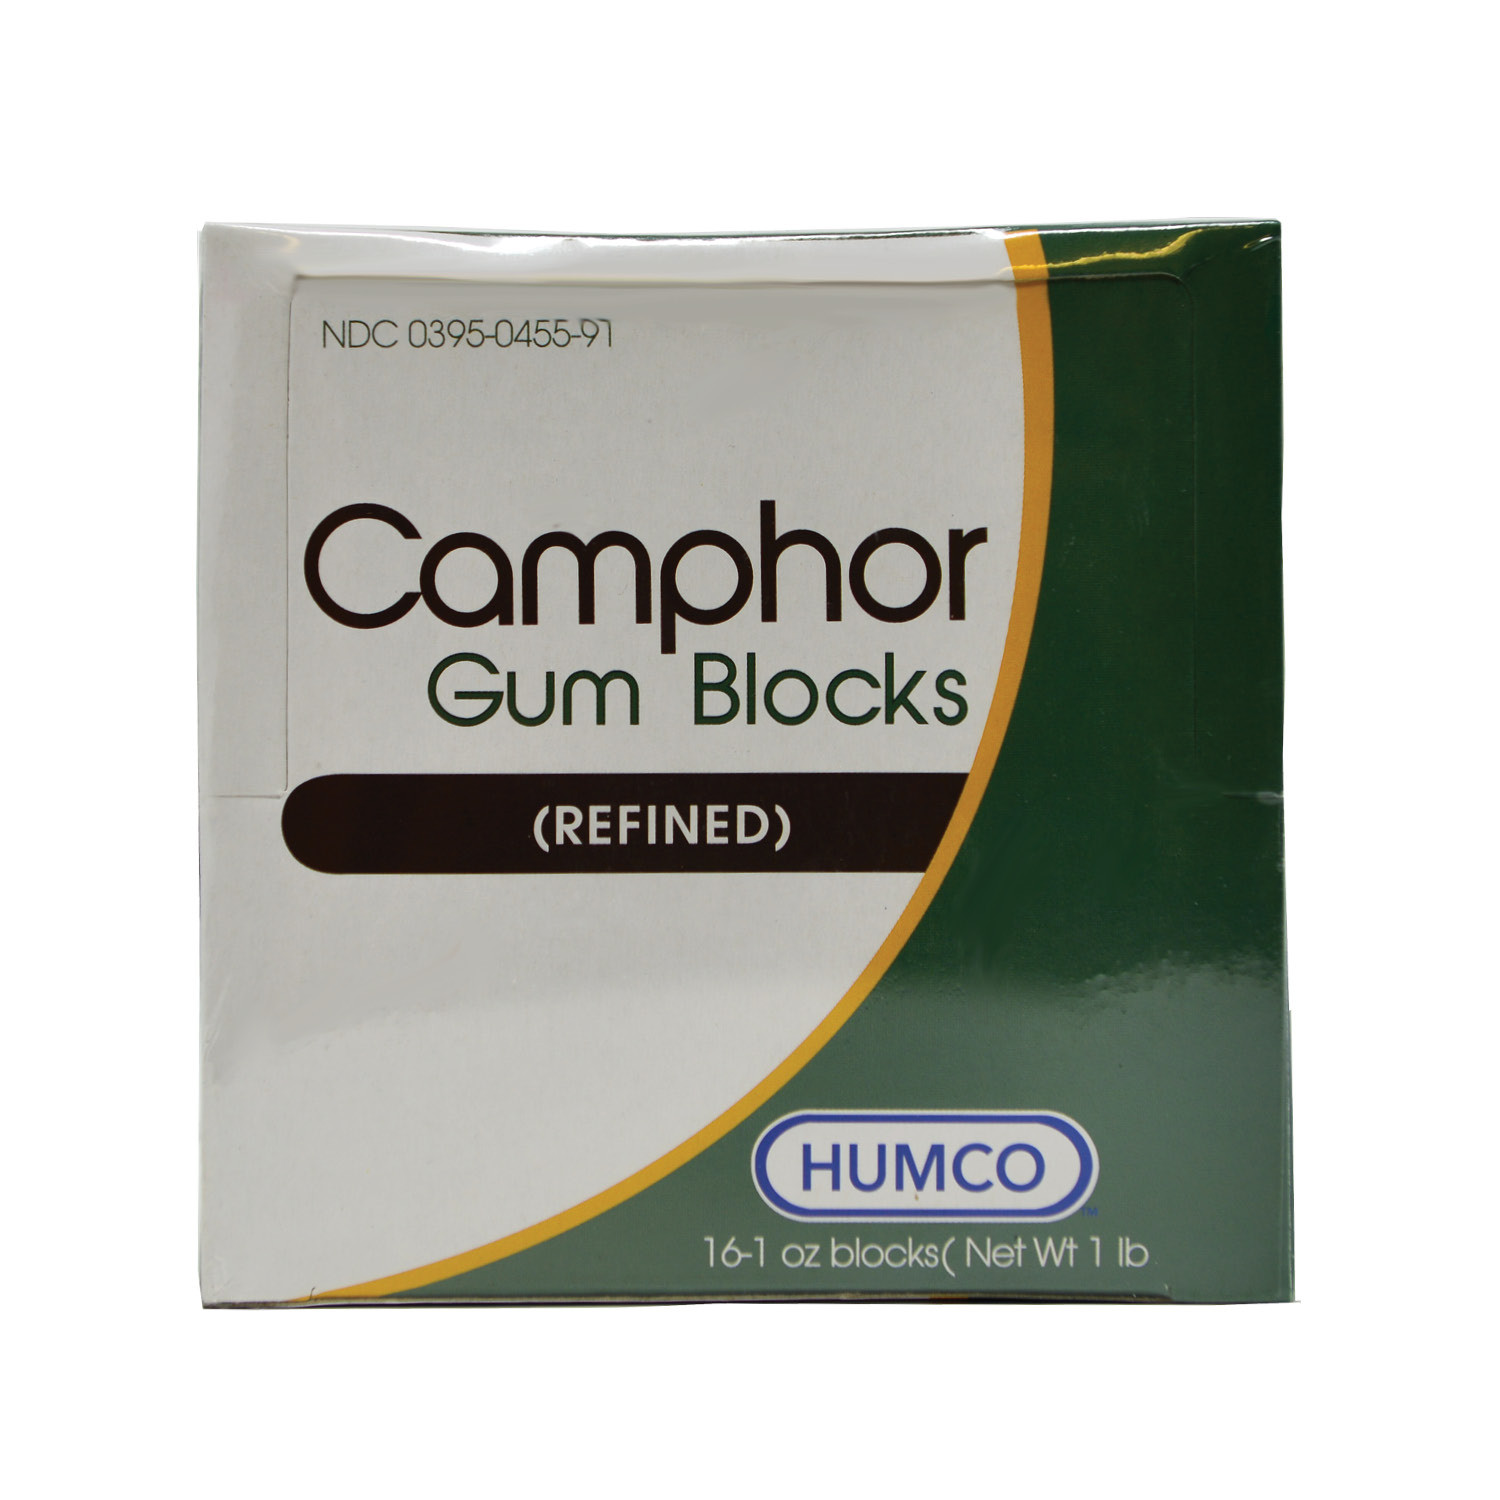 Camphor Gum Blocks